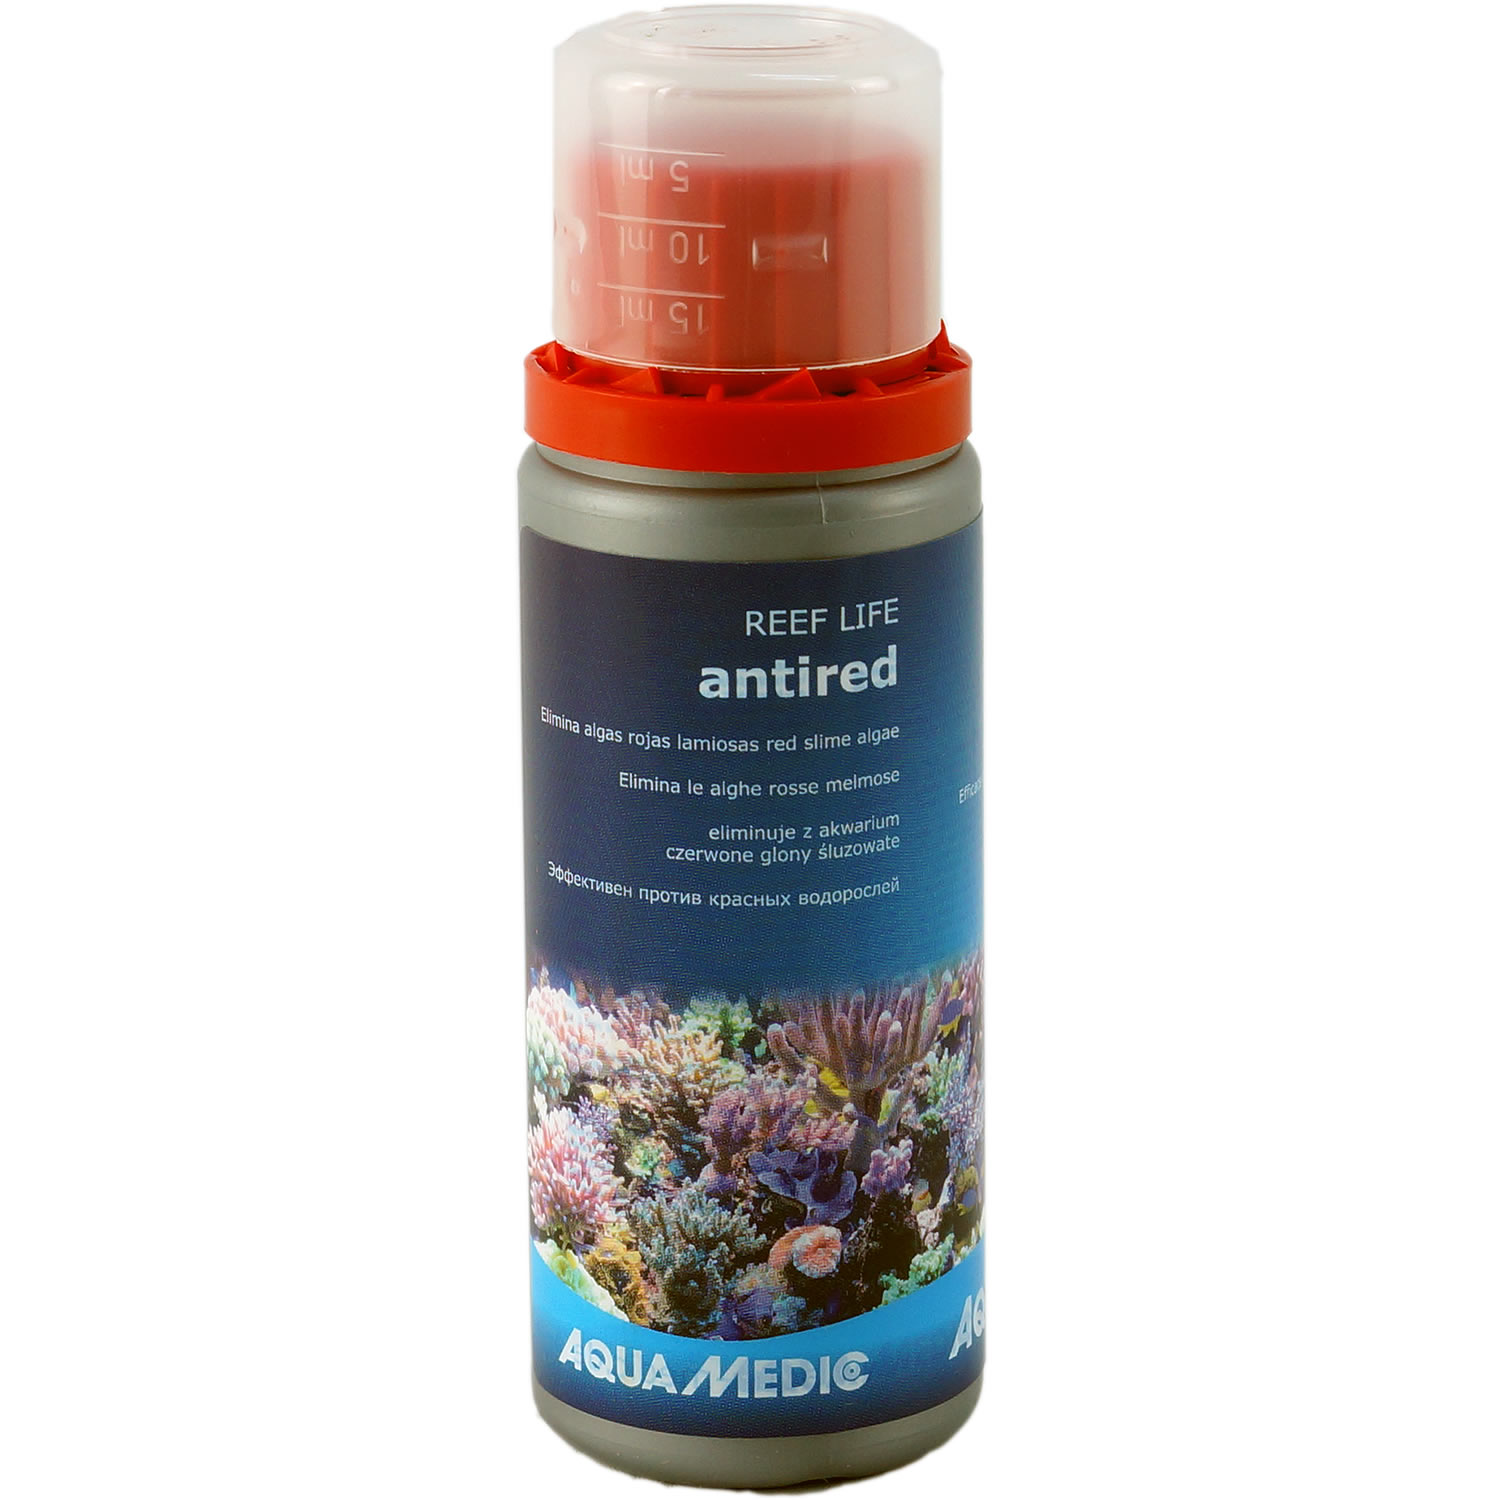 Aqua Medic REEF LIFE antired